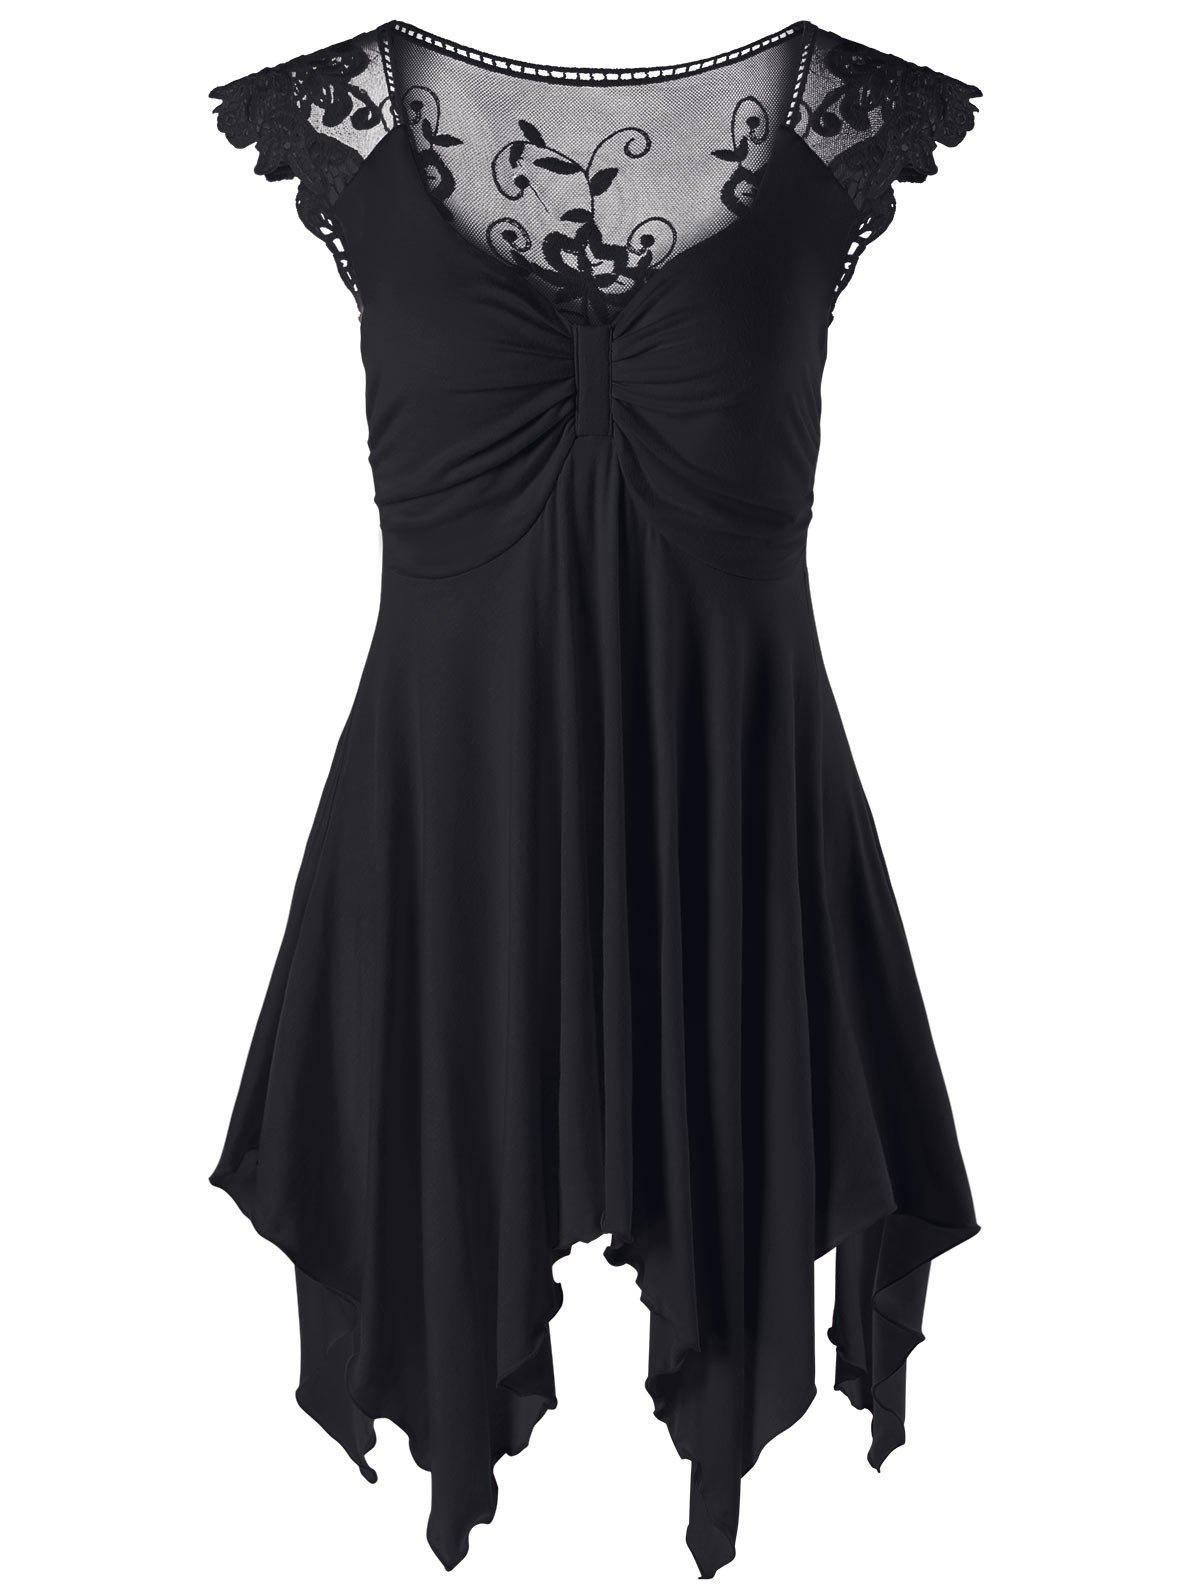 Lace Panel Cap Sleeve Asymmetric Top - BLACK M